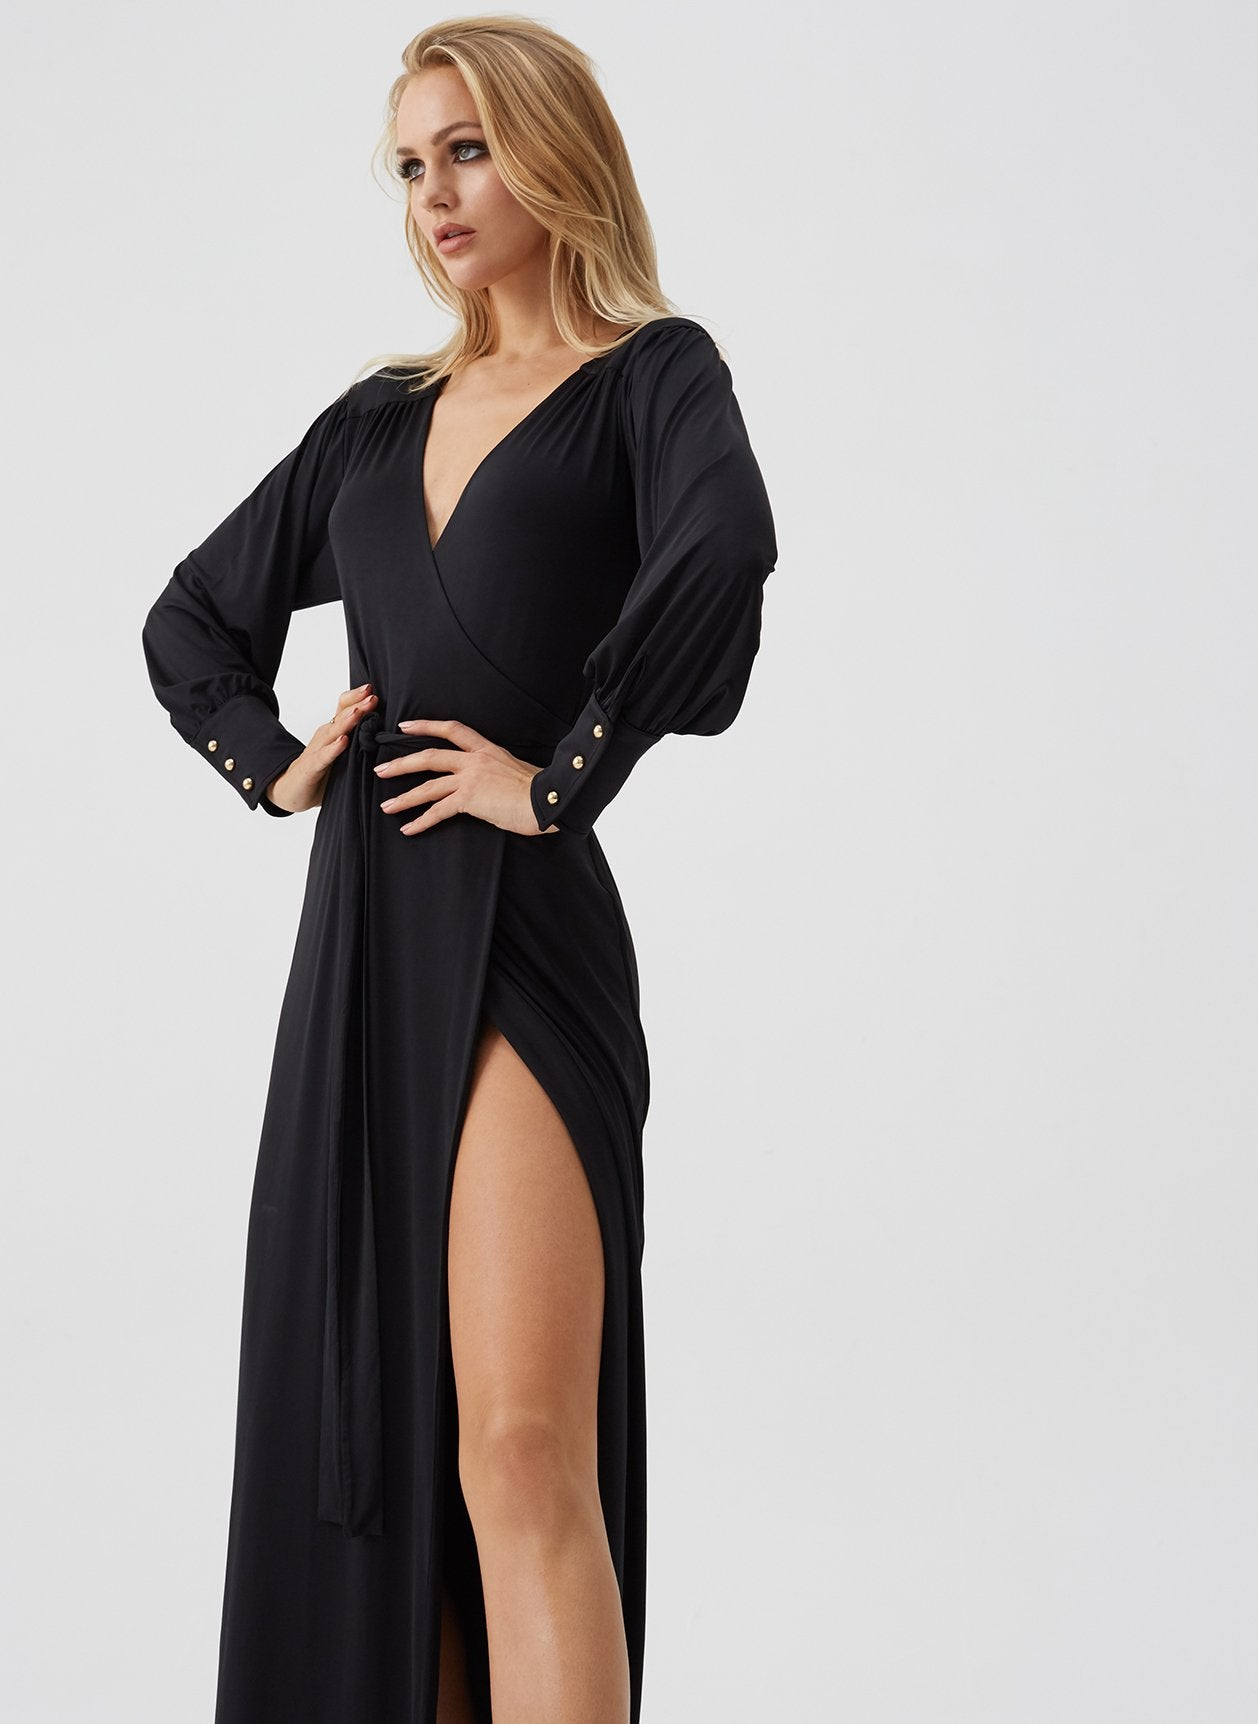 Libby Black Wrap Maxi Dress